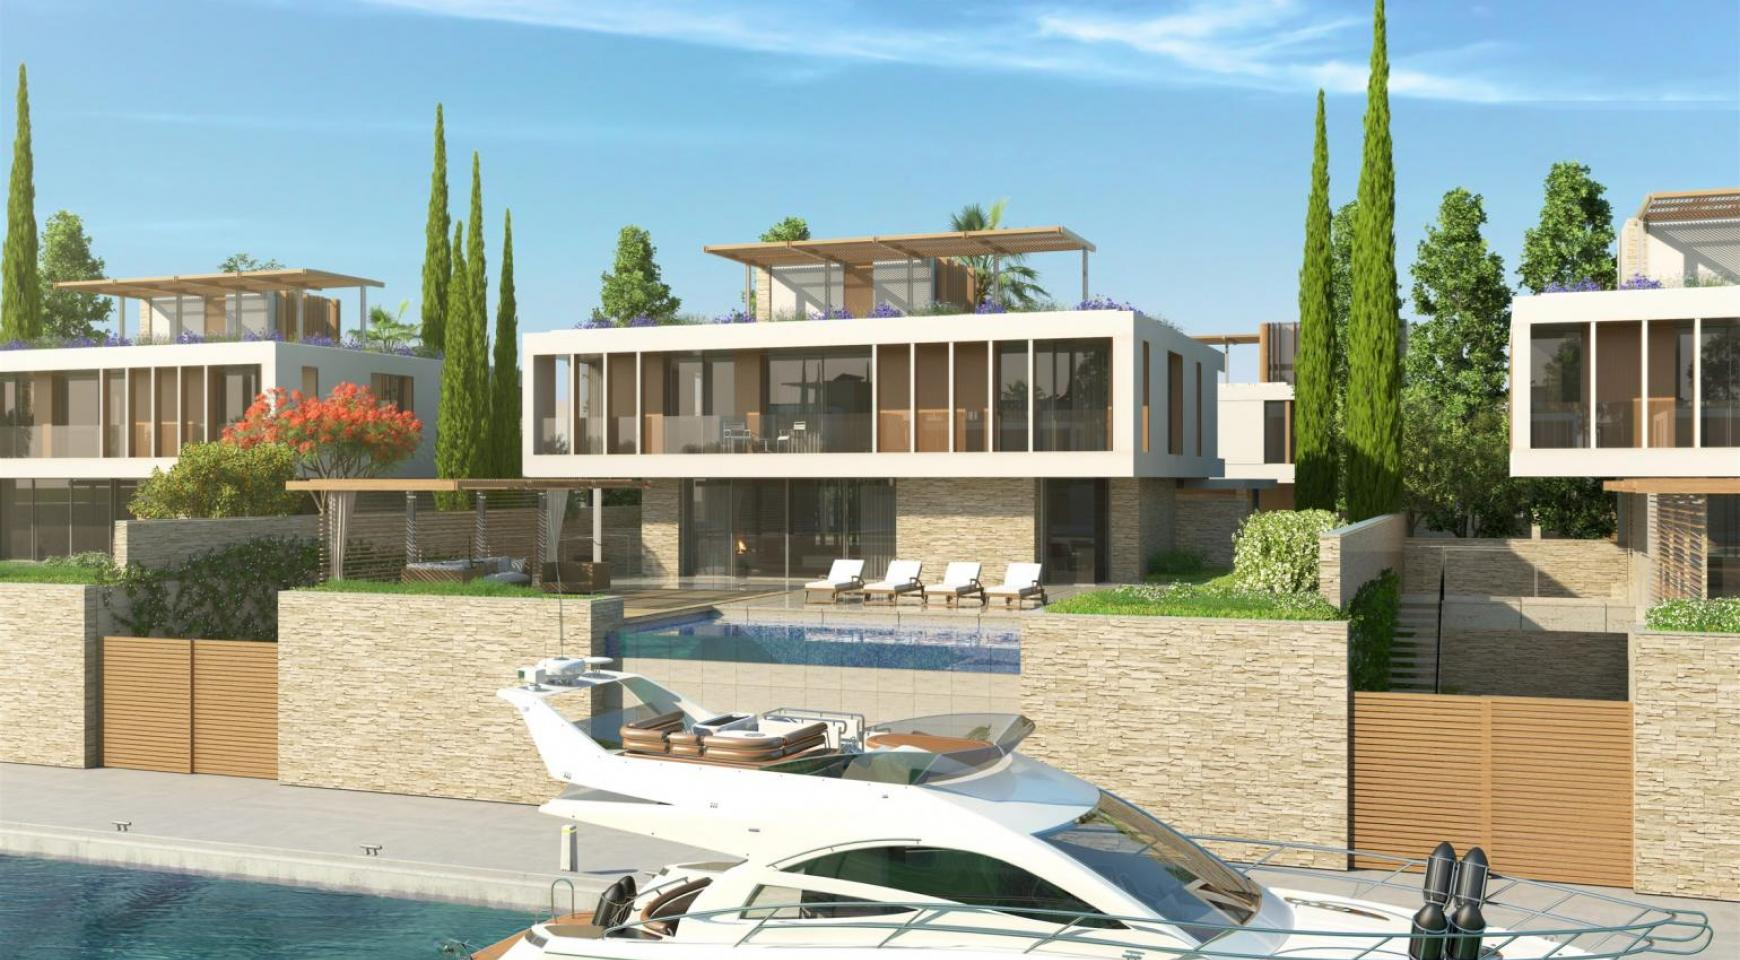 5 Bedroom Villa in an Exclusive Project by the Sea - 9